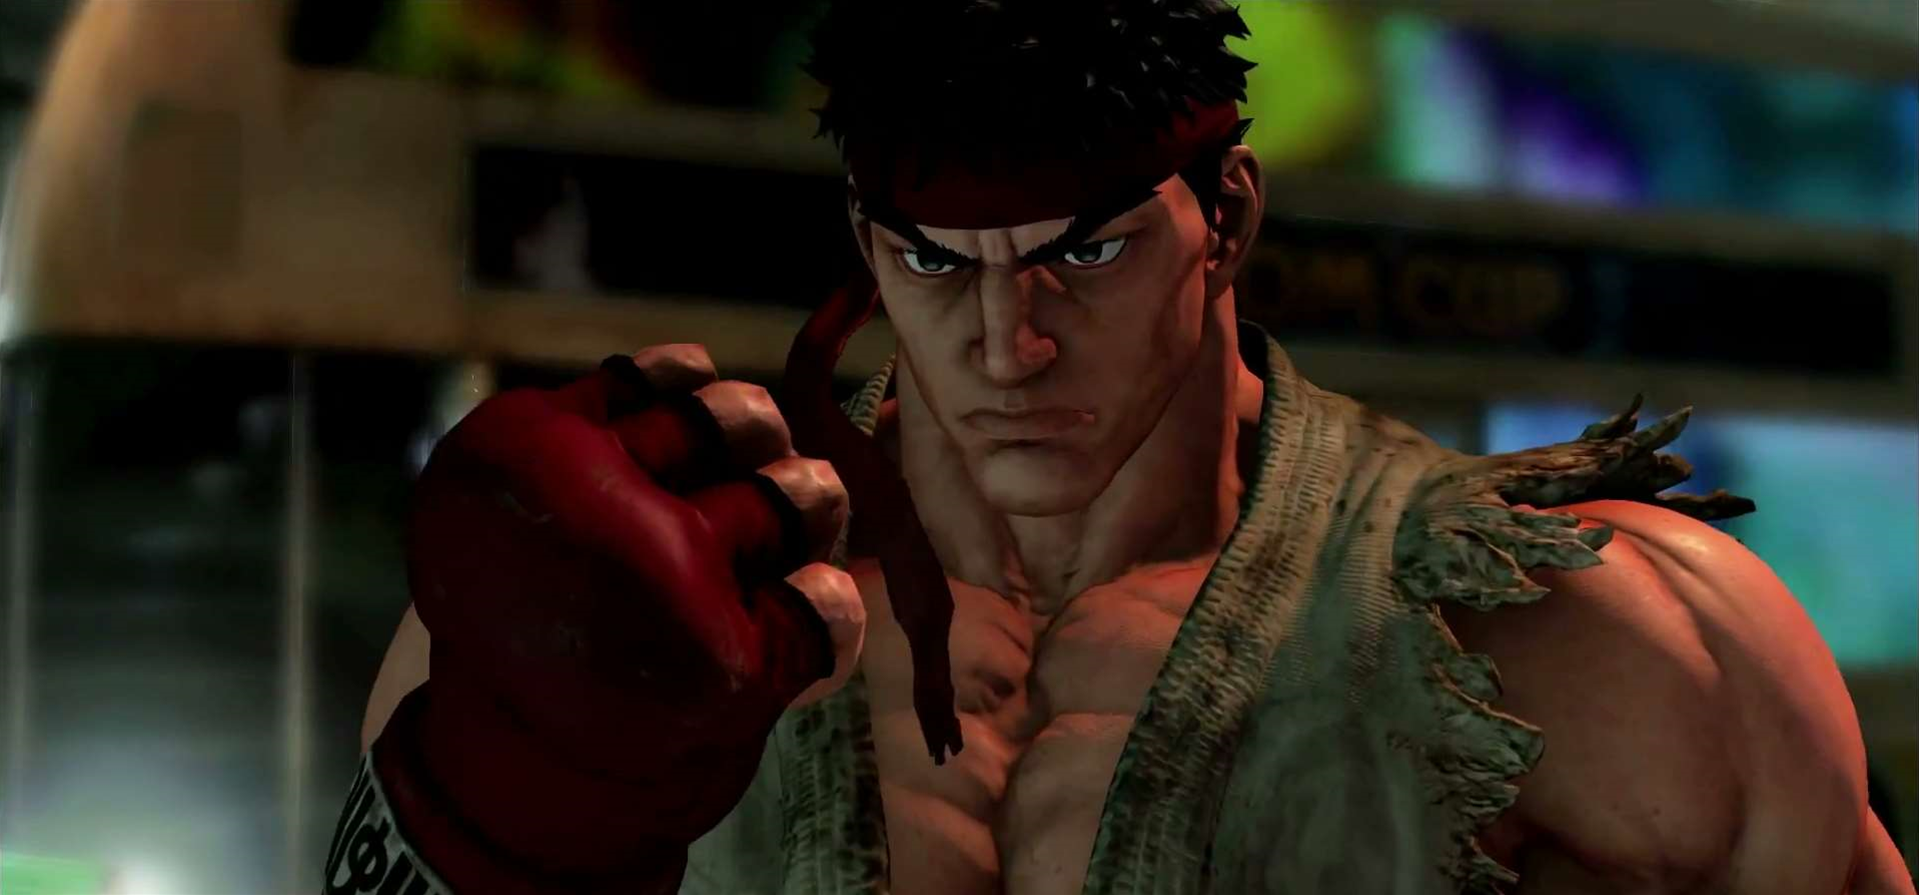 News: Street Fighter V announced as PC and PS4 exclusive